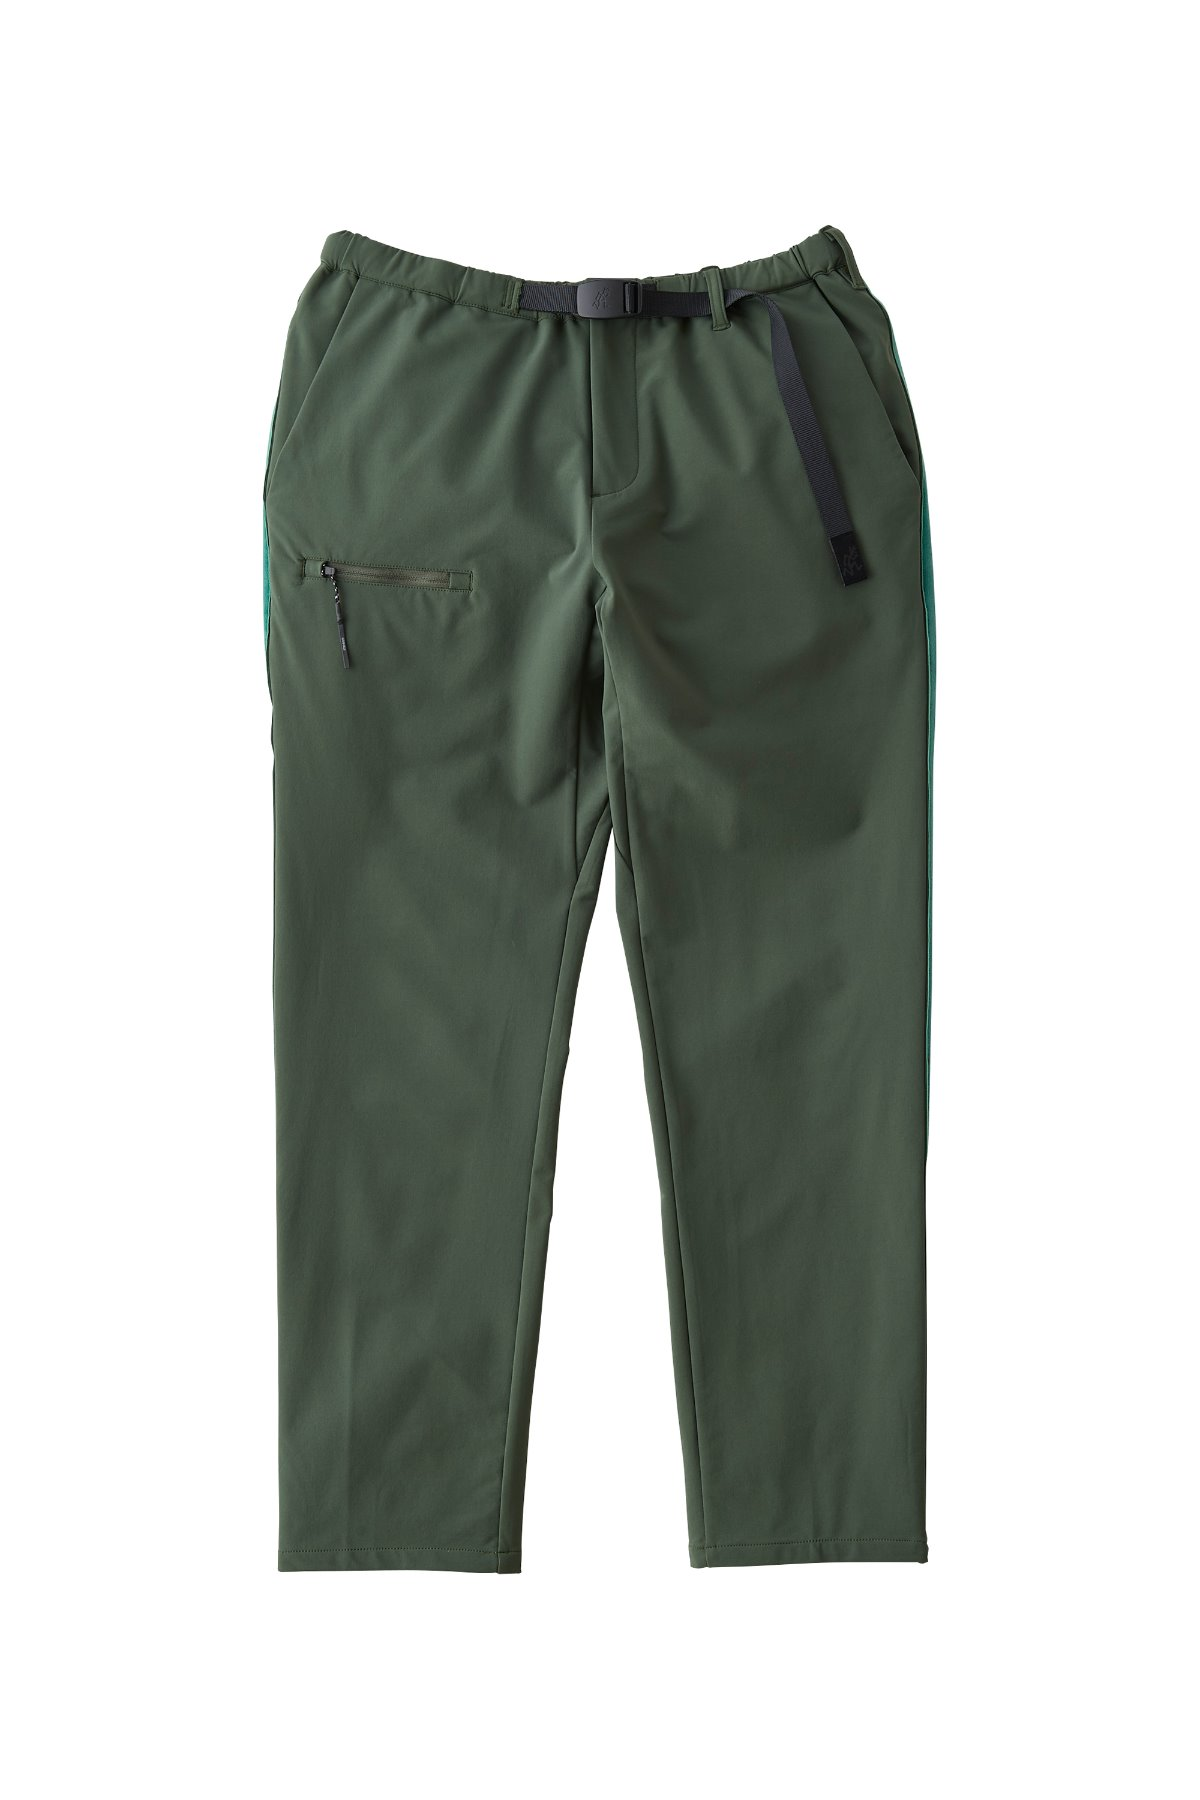 STORMFLEECE LINE PANTS DEEP OLIVE